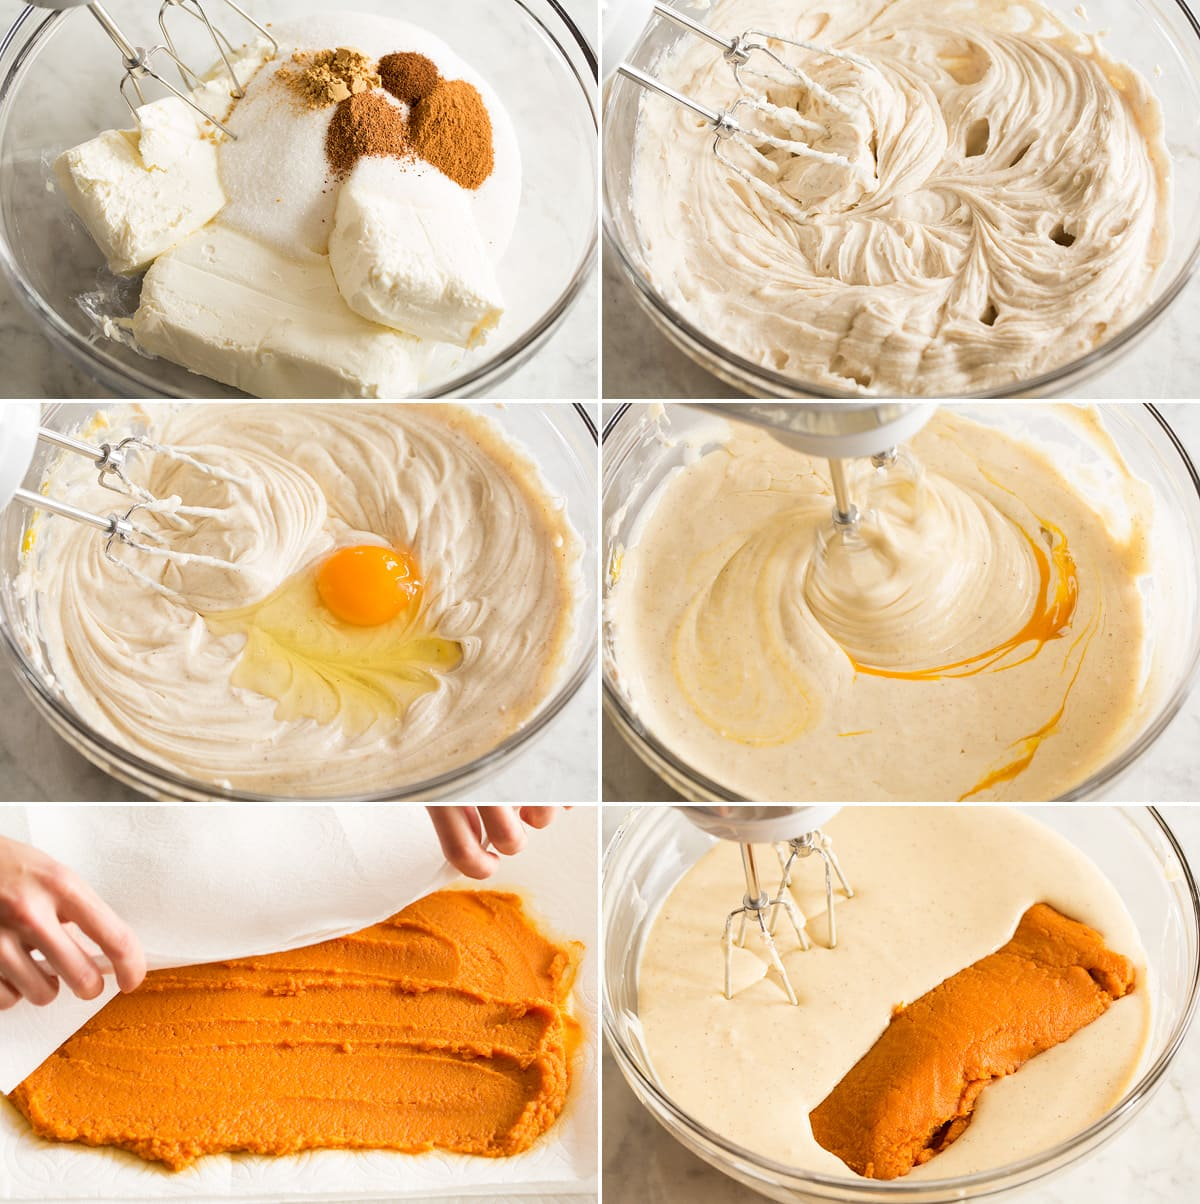 Collage of six images showing steps to preparing pumpkin cheesecake batter in a mixing bowl.